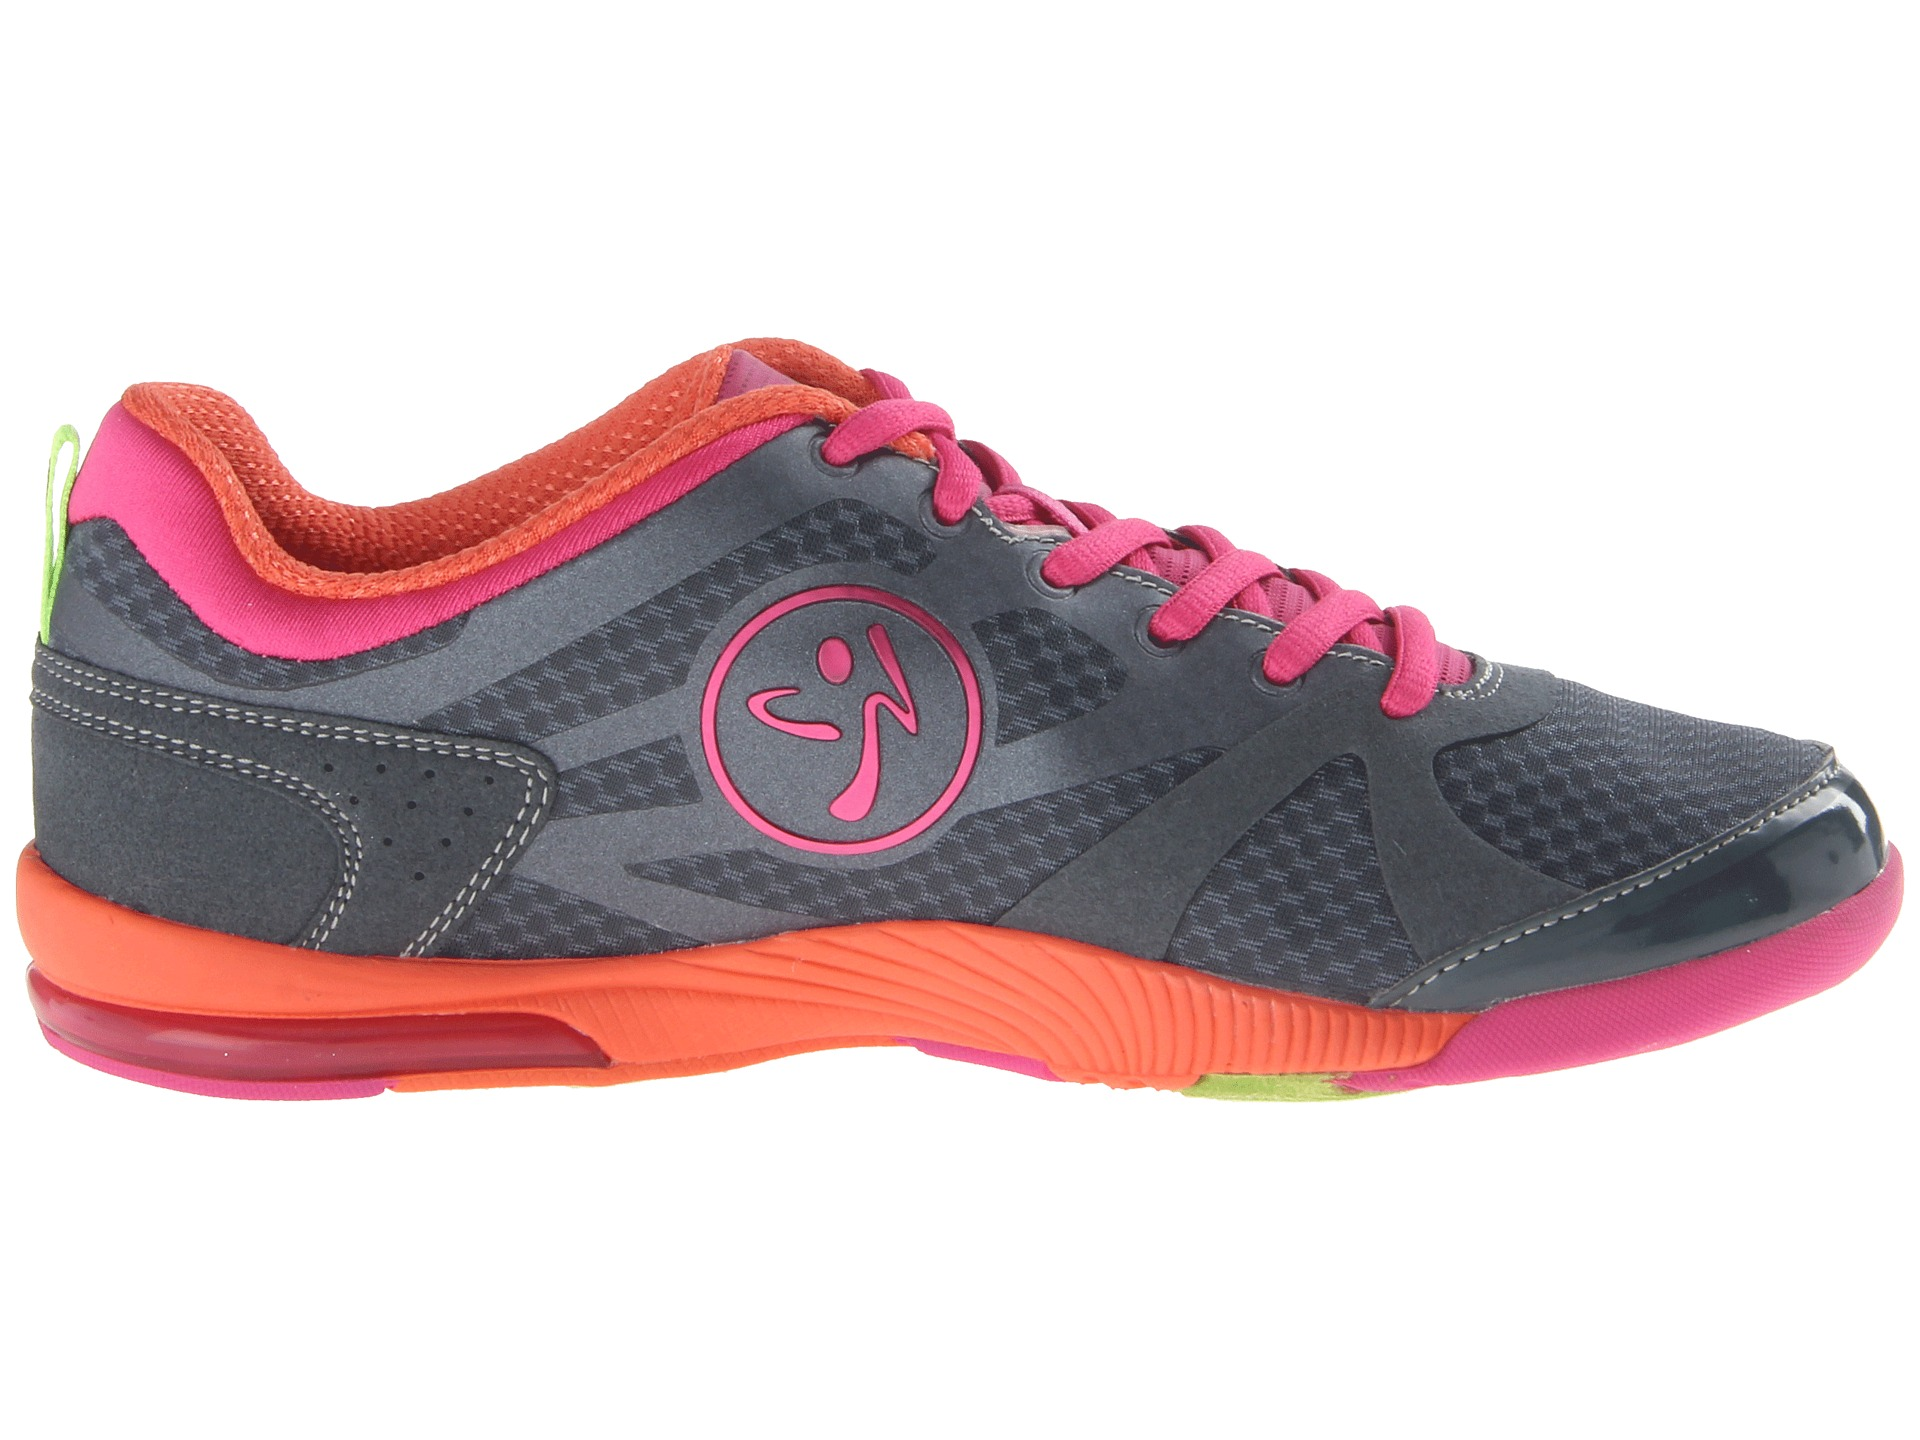 Free shipping BOTH ways on zumba shoes for women, from our vast selection of styles. Fast delivery, and 24/7/ real-person service with a smile. Click or call